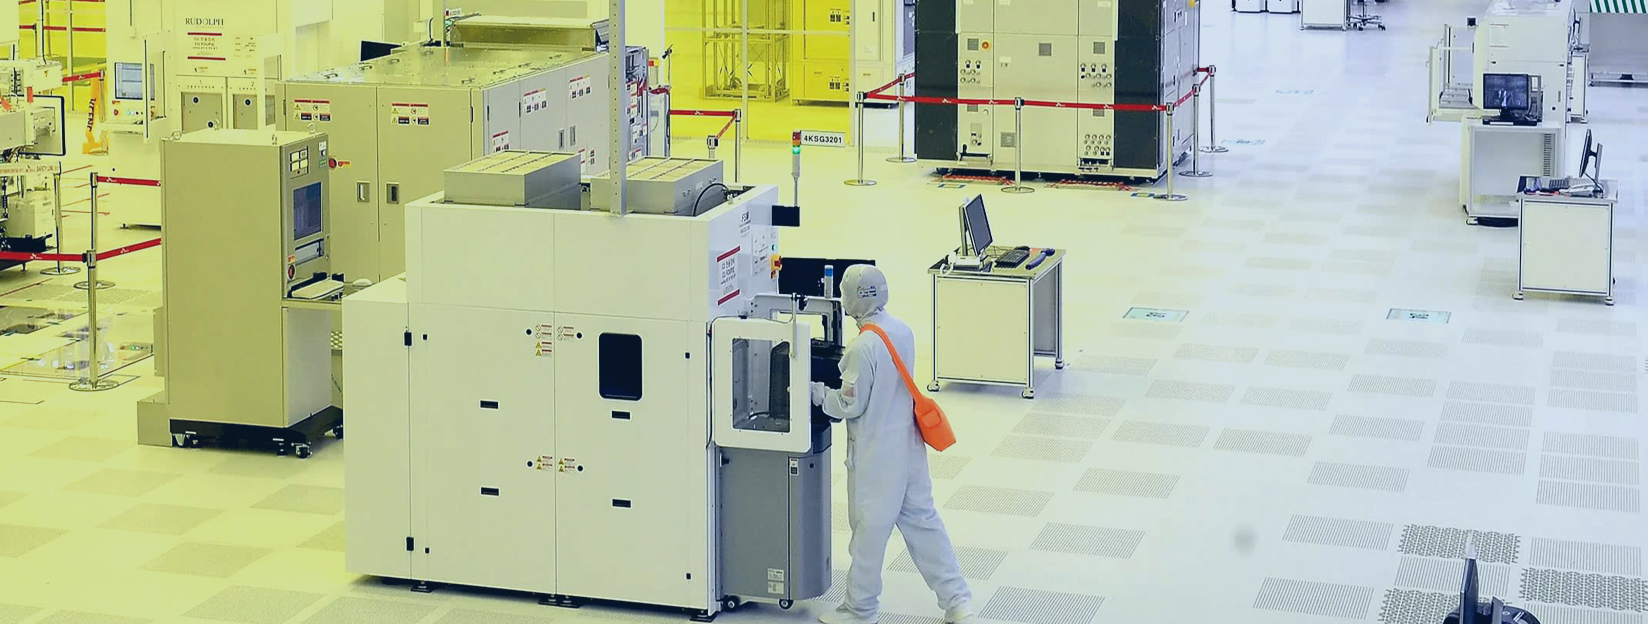 China and Taiwan Set to Lead in 2020 Chip Equipment Investment